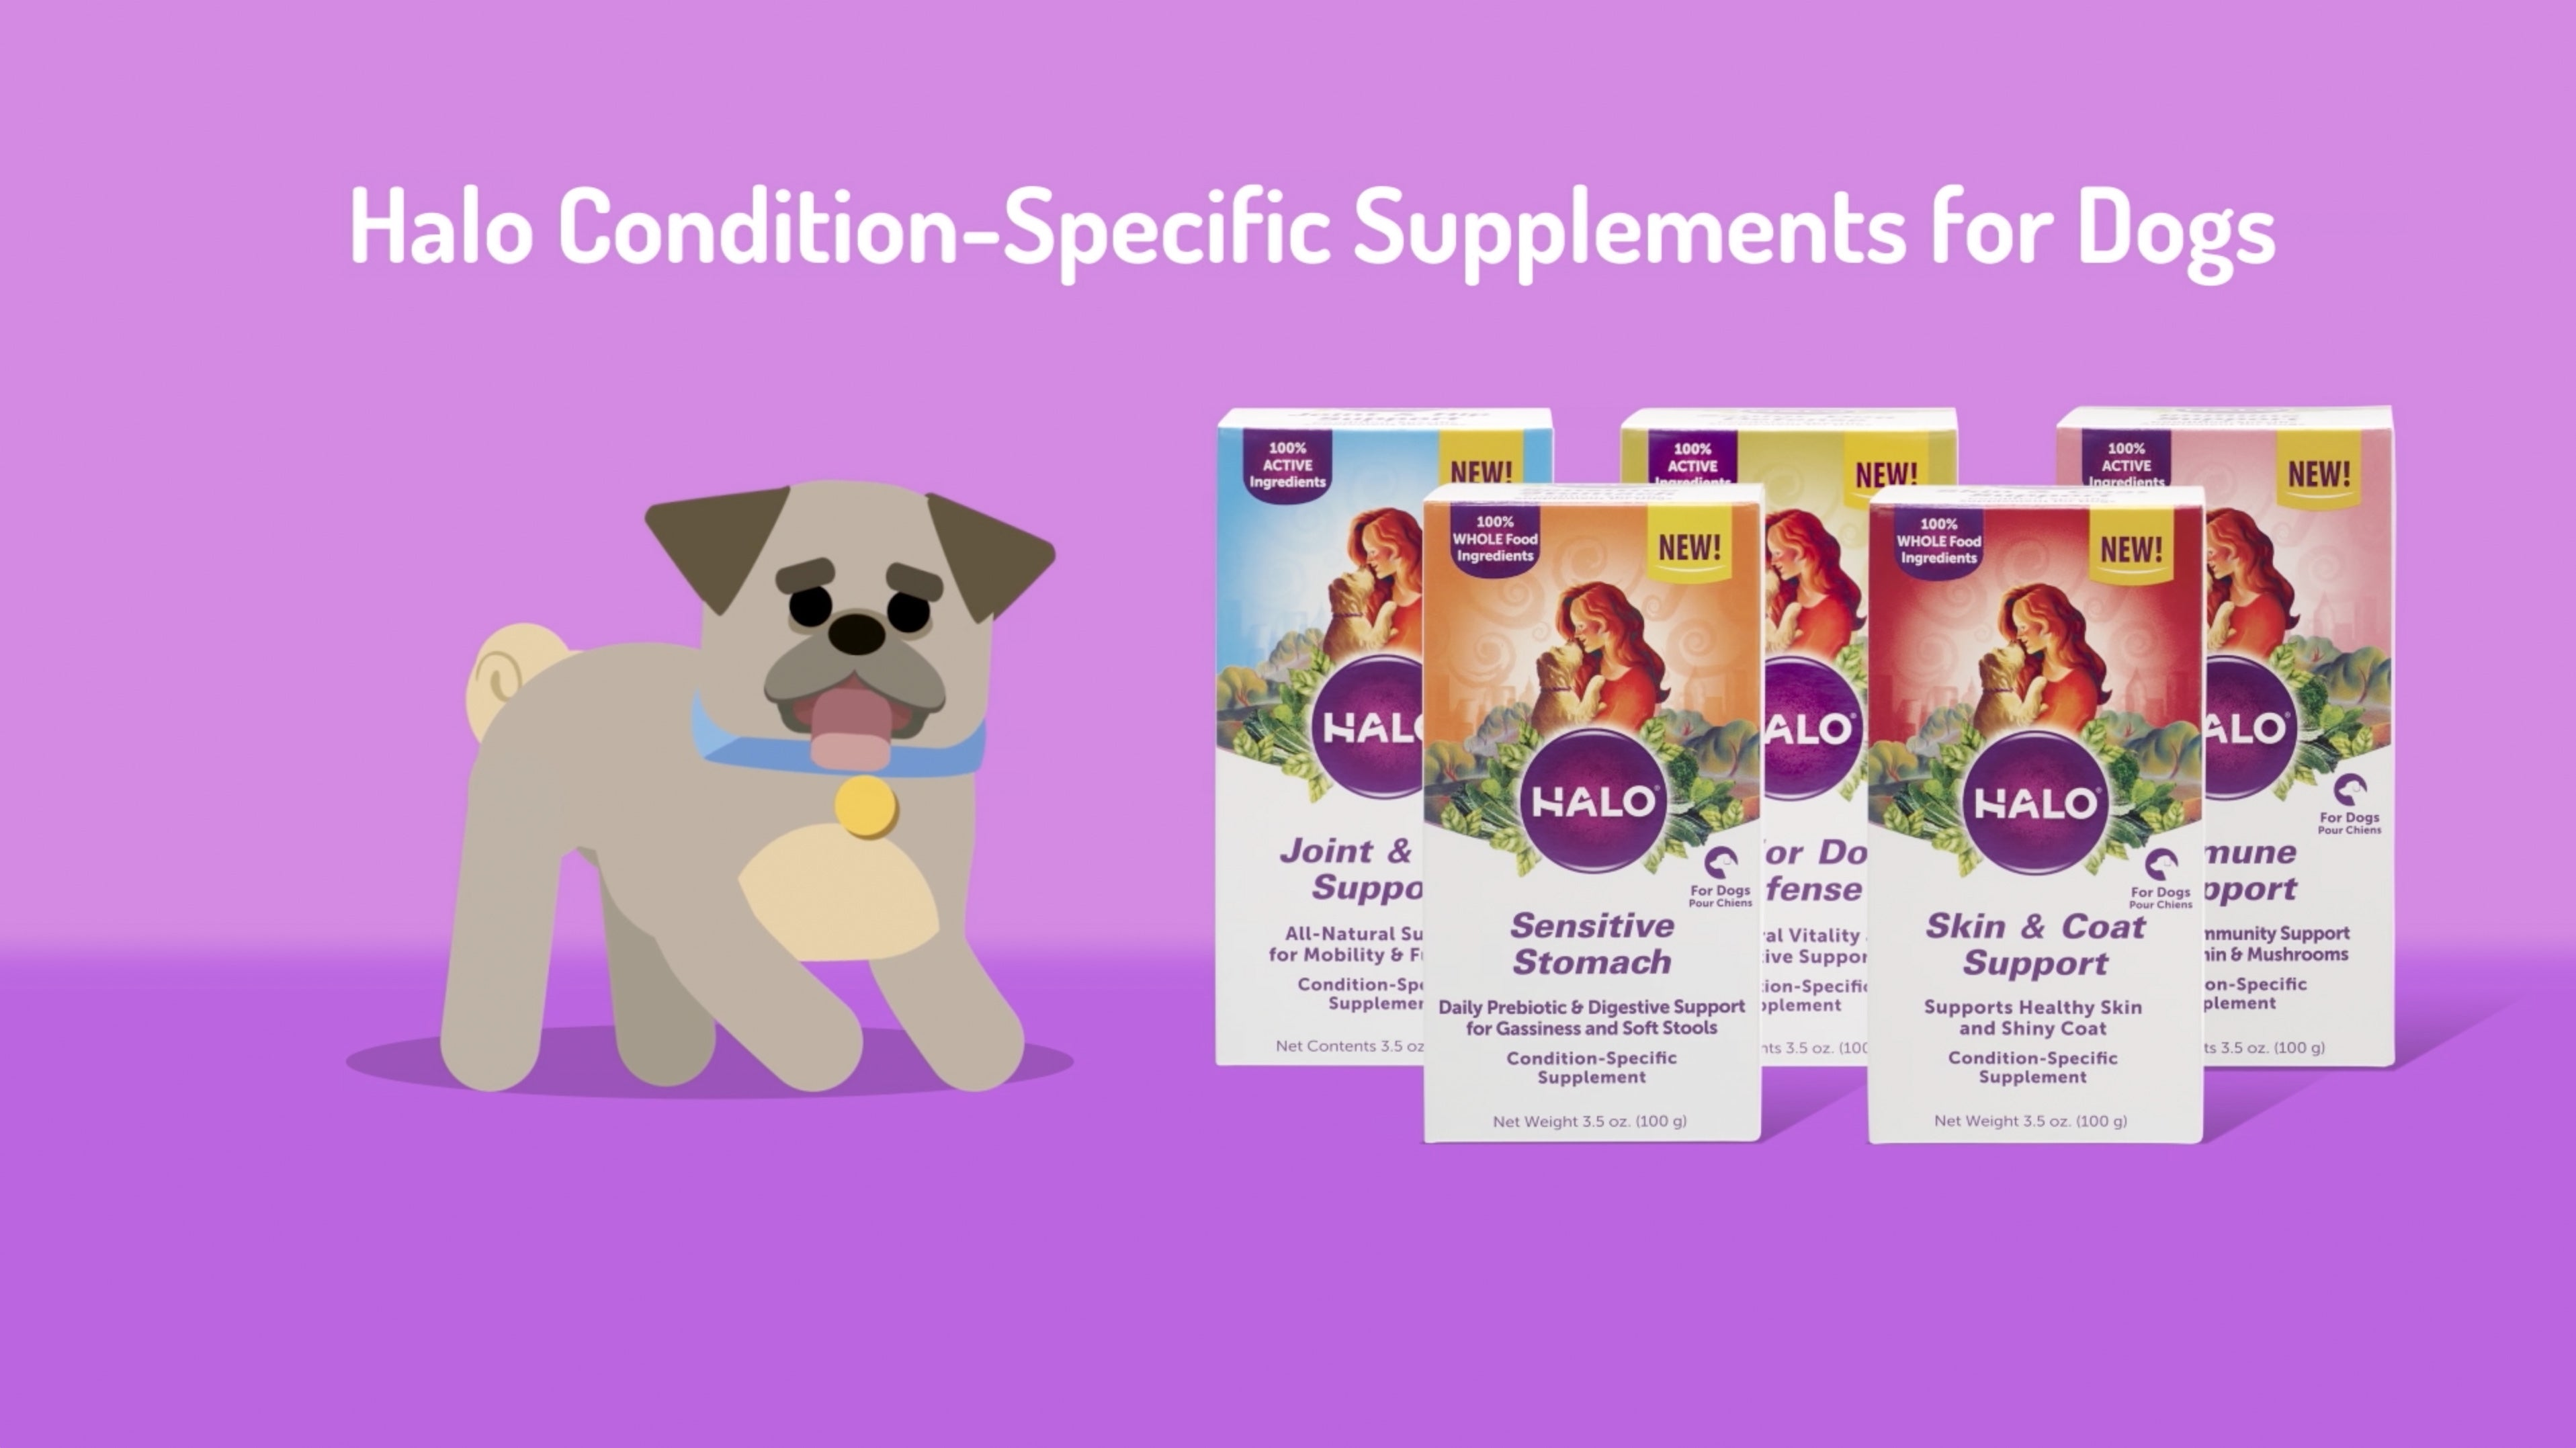 Condition-Specific Supplements for Dogs